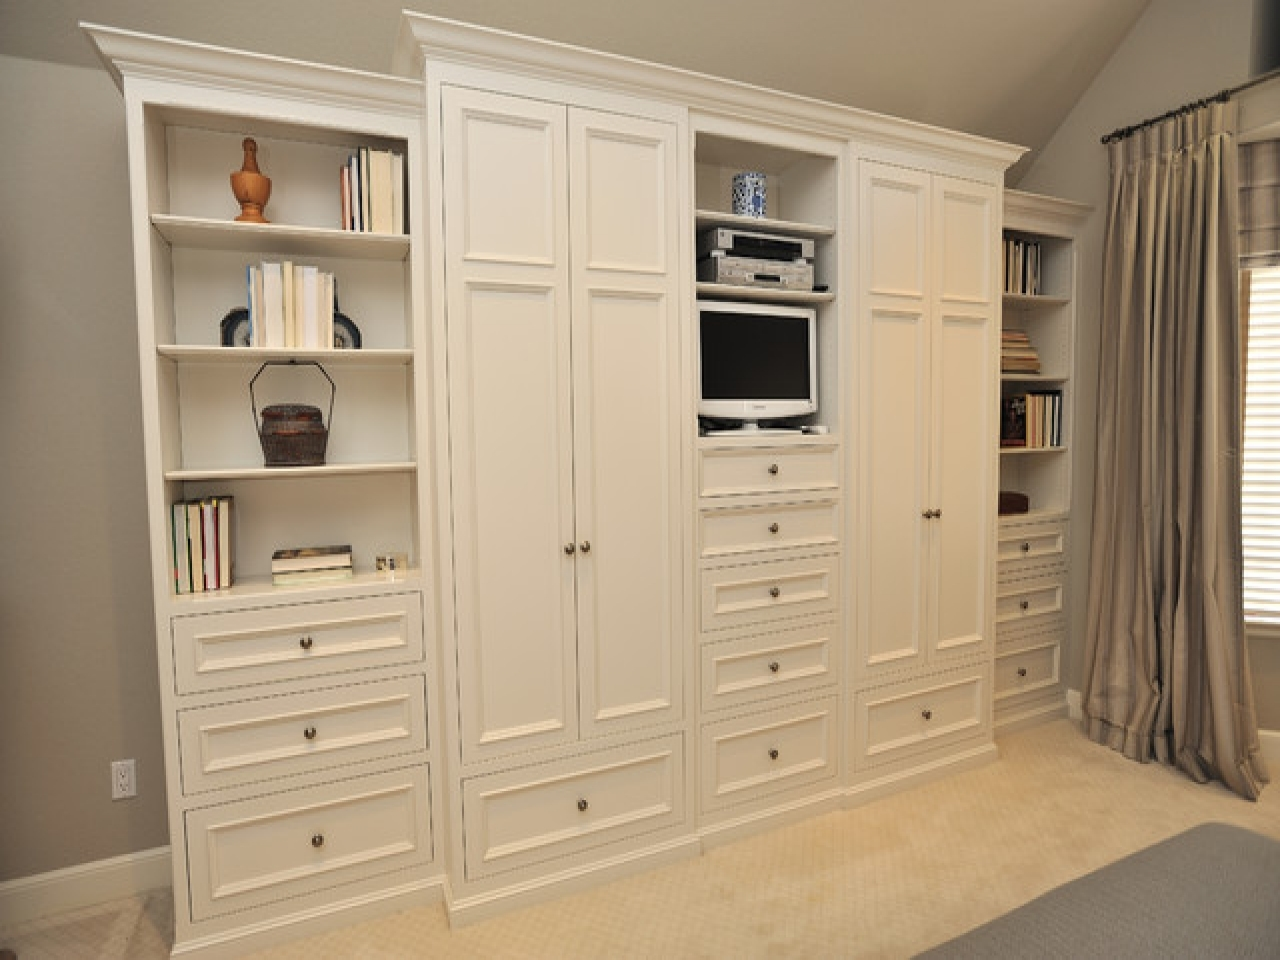 Bedroom Storage Cabinets Wall